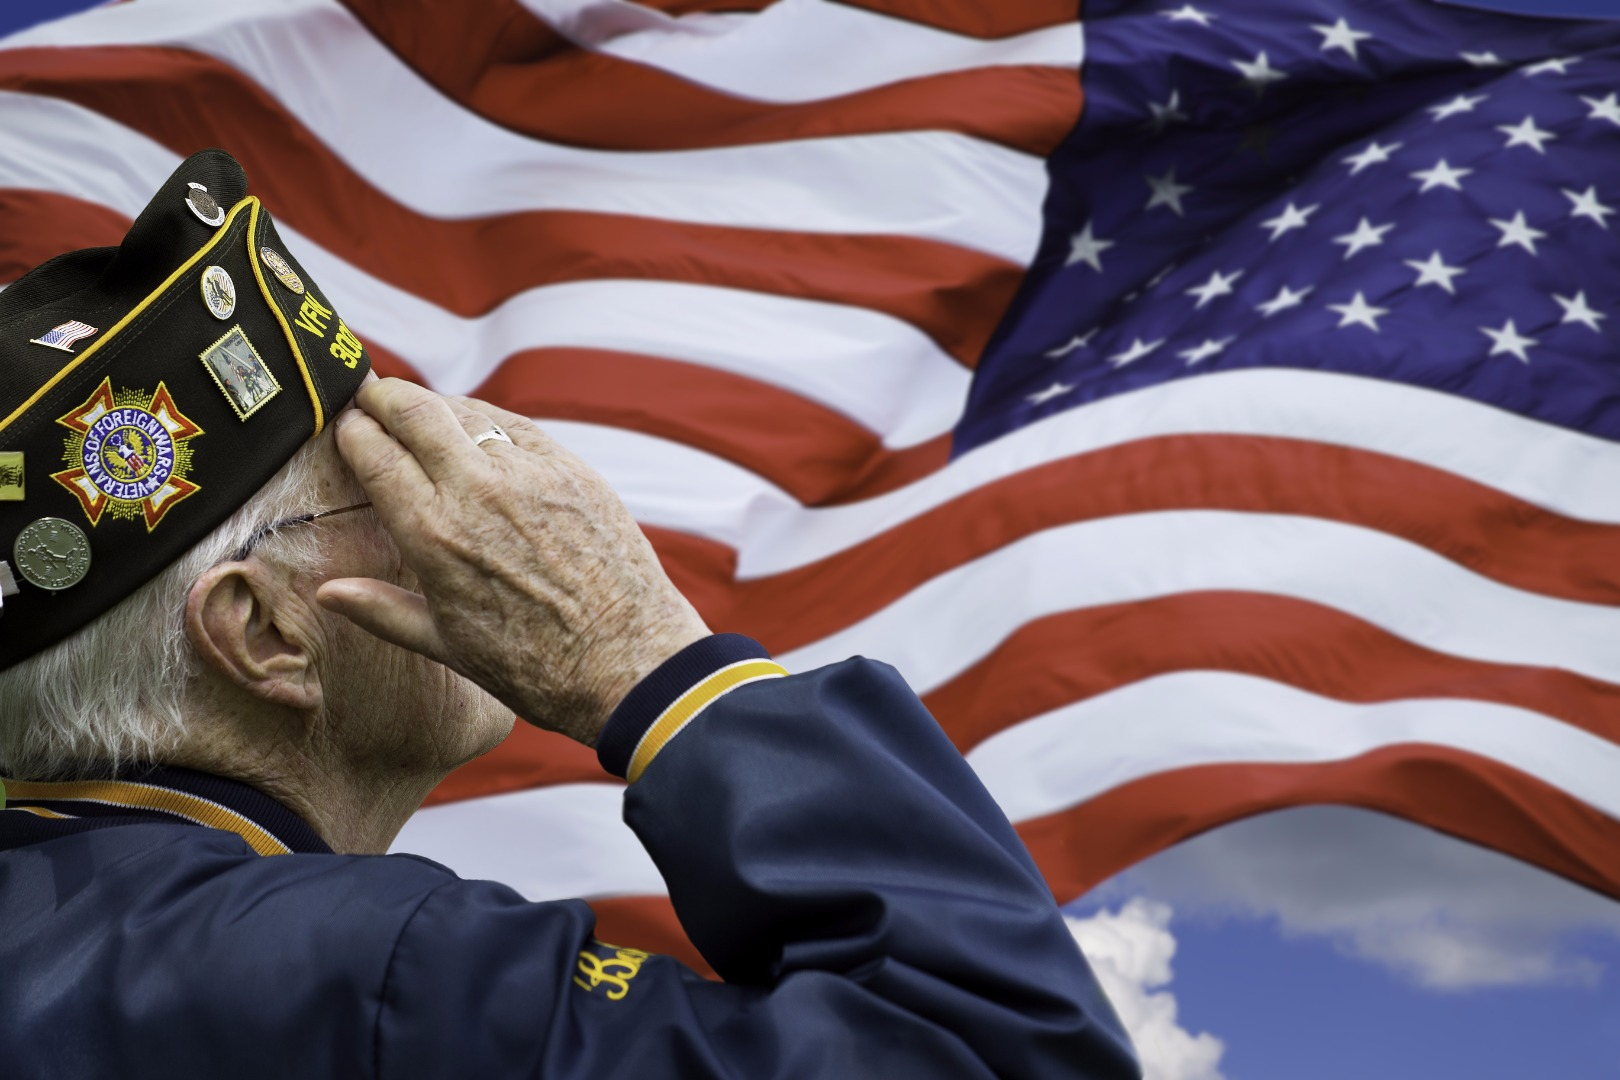 veteran-saluting-flag.jpg